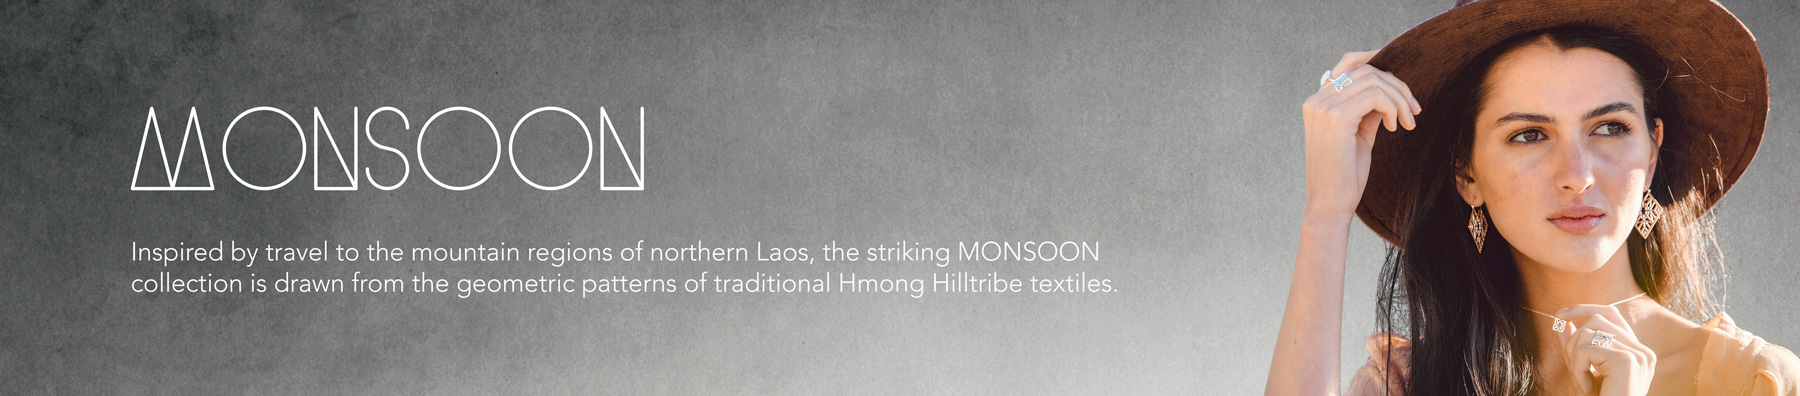 monsoon_collection